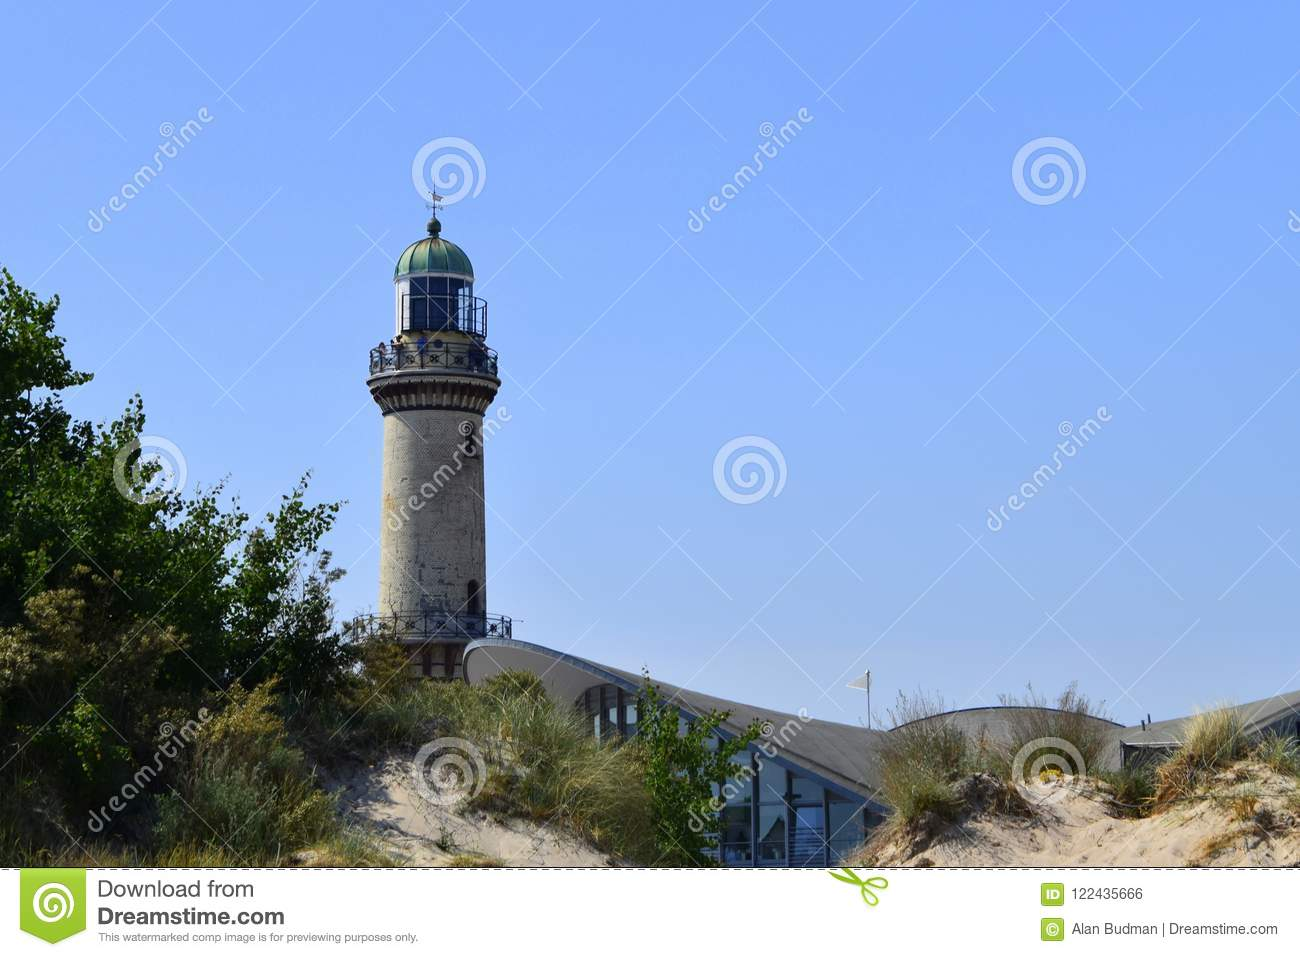 24e66434519bb Warnemunde, Germany - June 8, 2018: Landmark lighthouse and shops in beach  town of Warnemunde, Germany as seen from the beach on this date